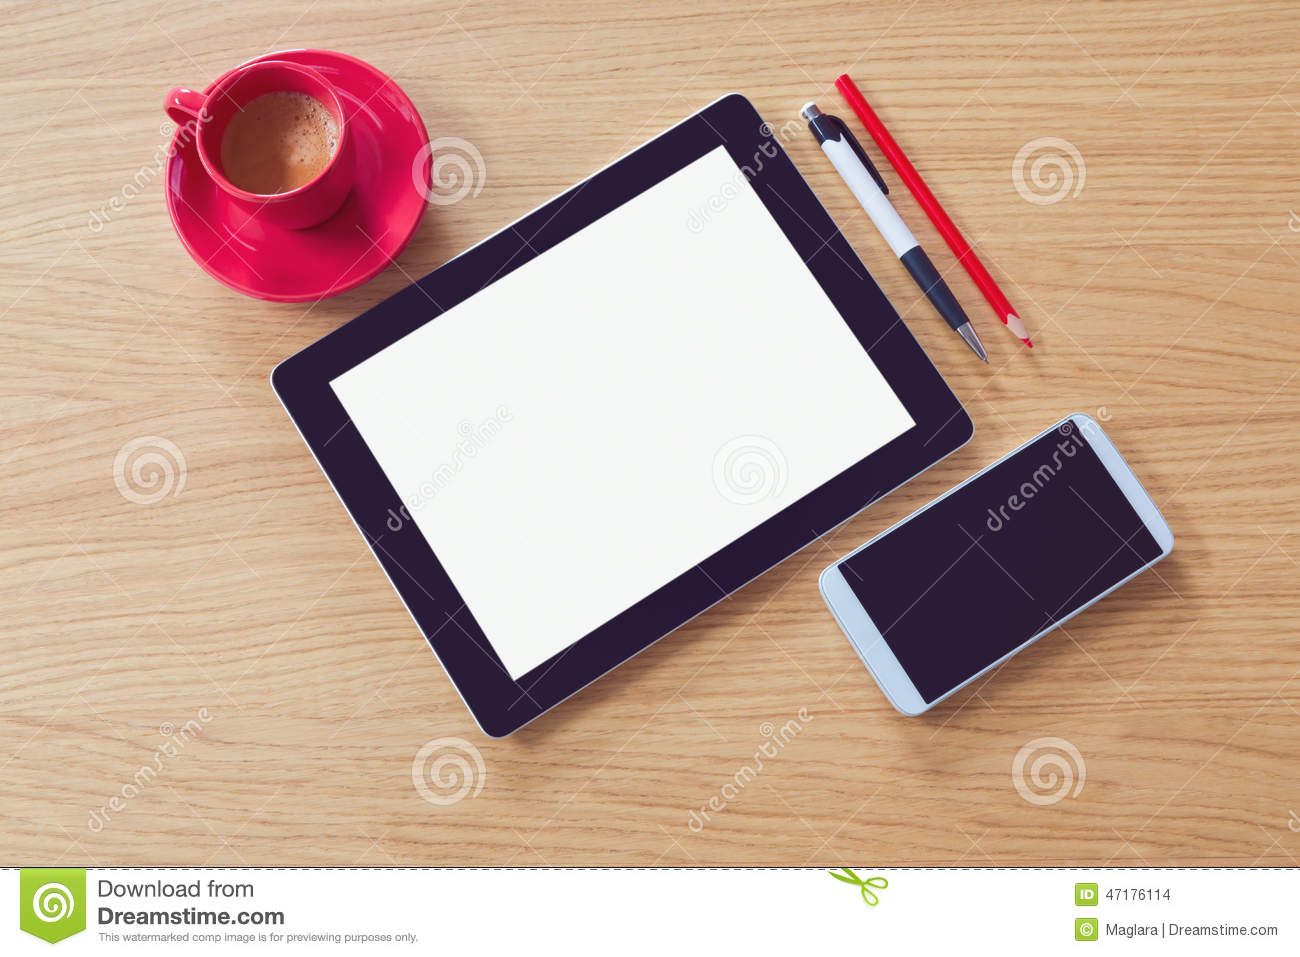 Tablet with blank screen on wooden table. Office desk mock up. View